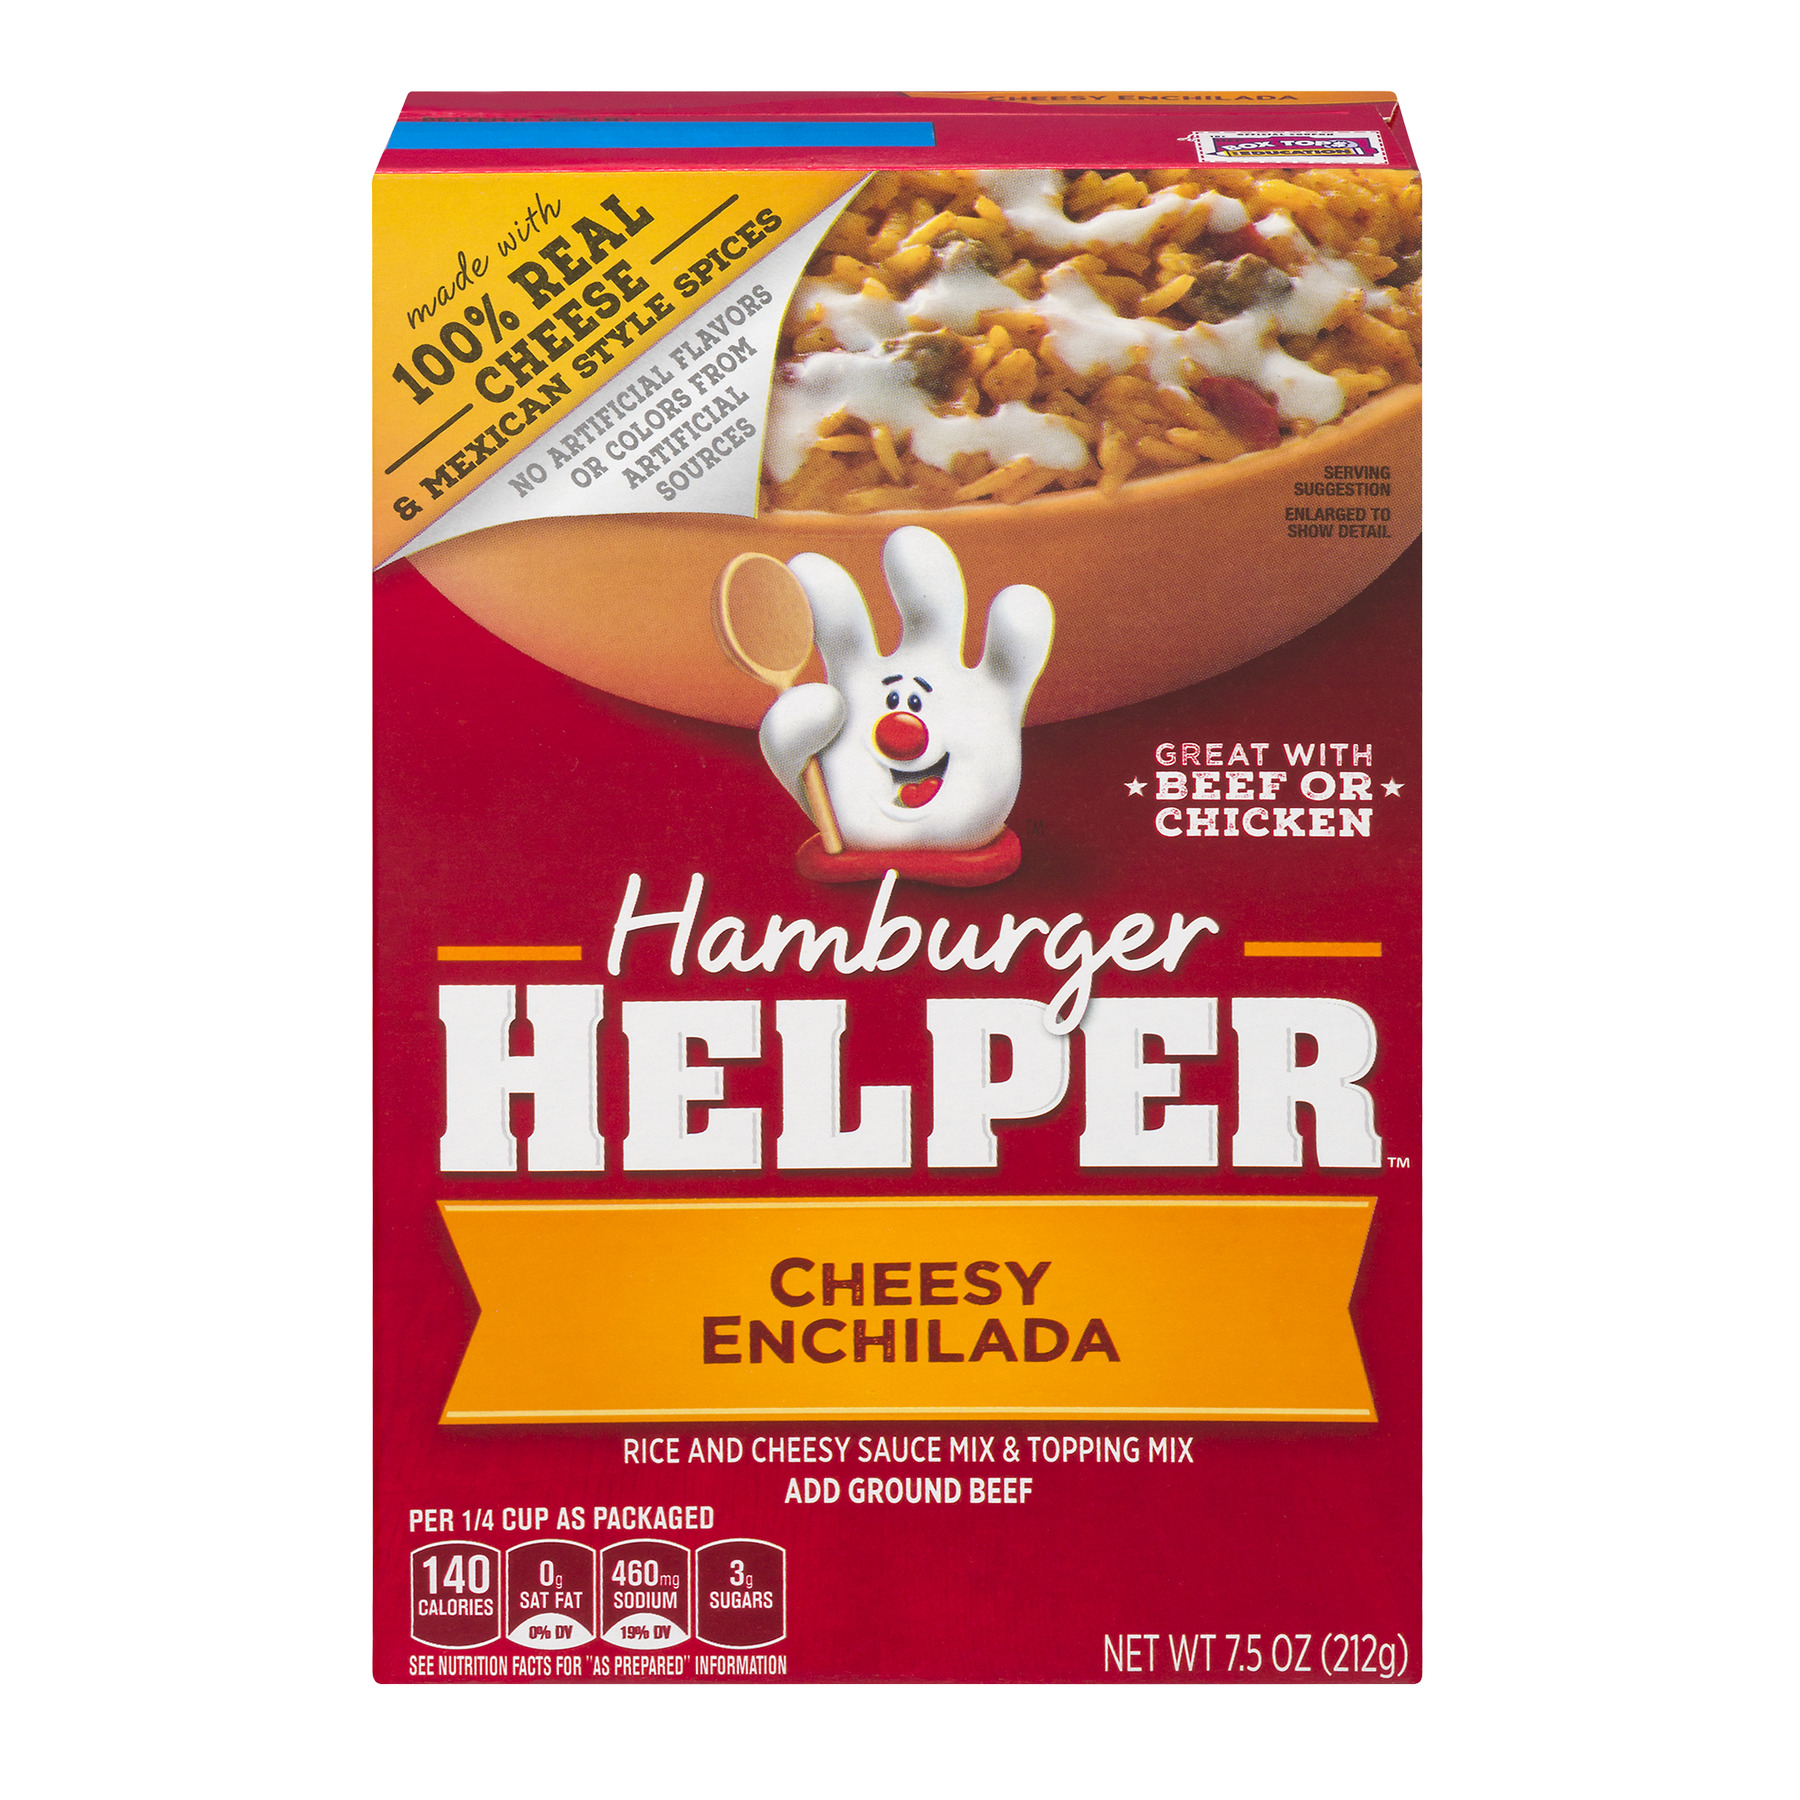 Betty Crocker Hamburger Helper Cheesy Enchilada 7.5 oz Box